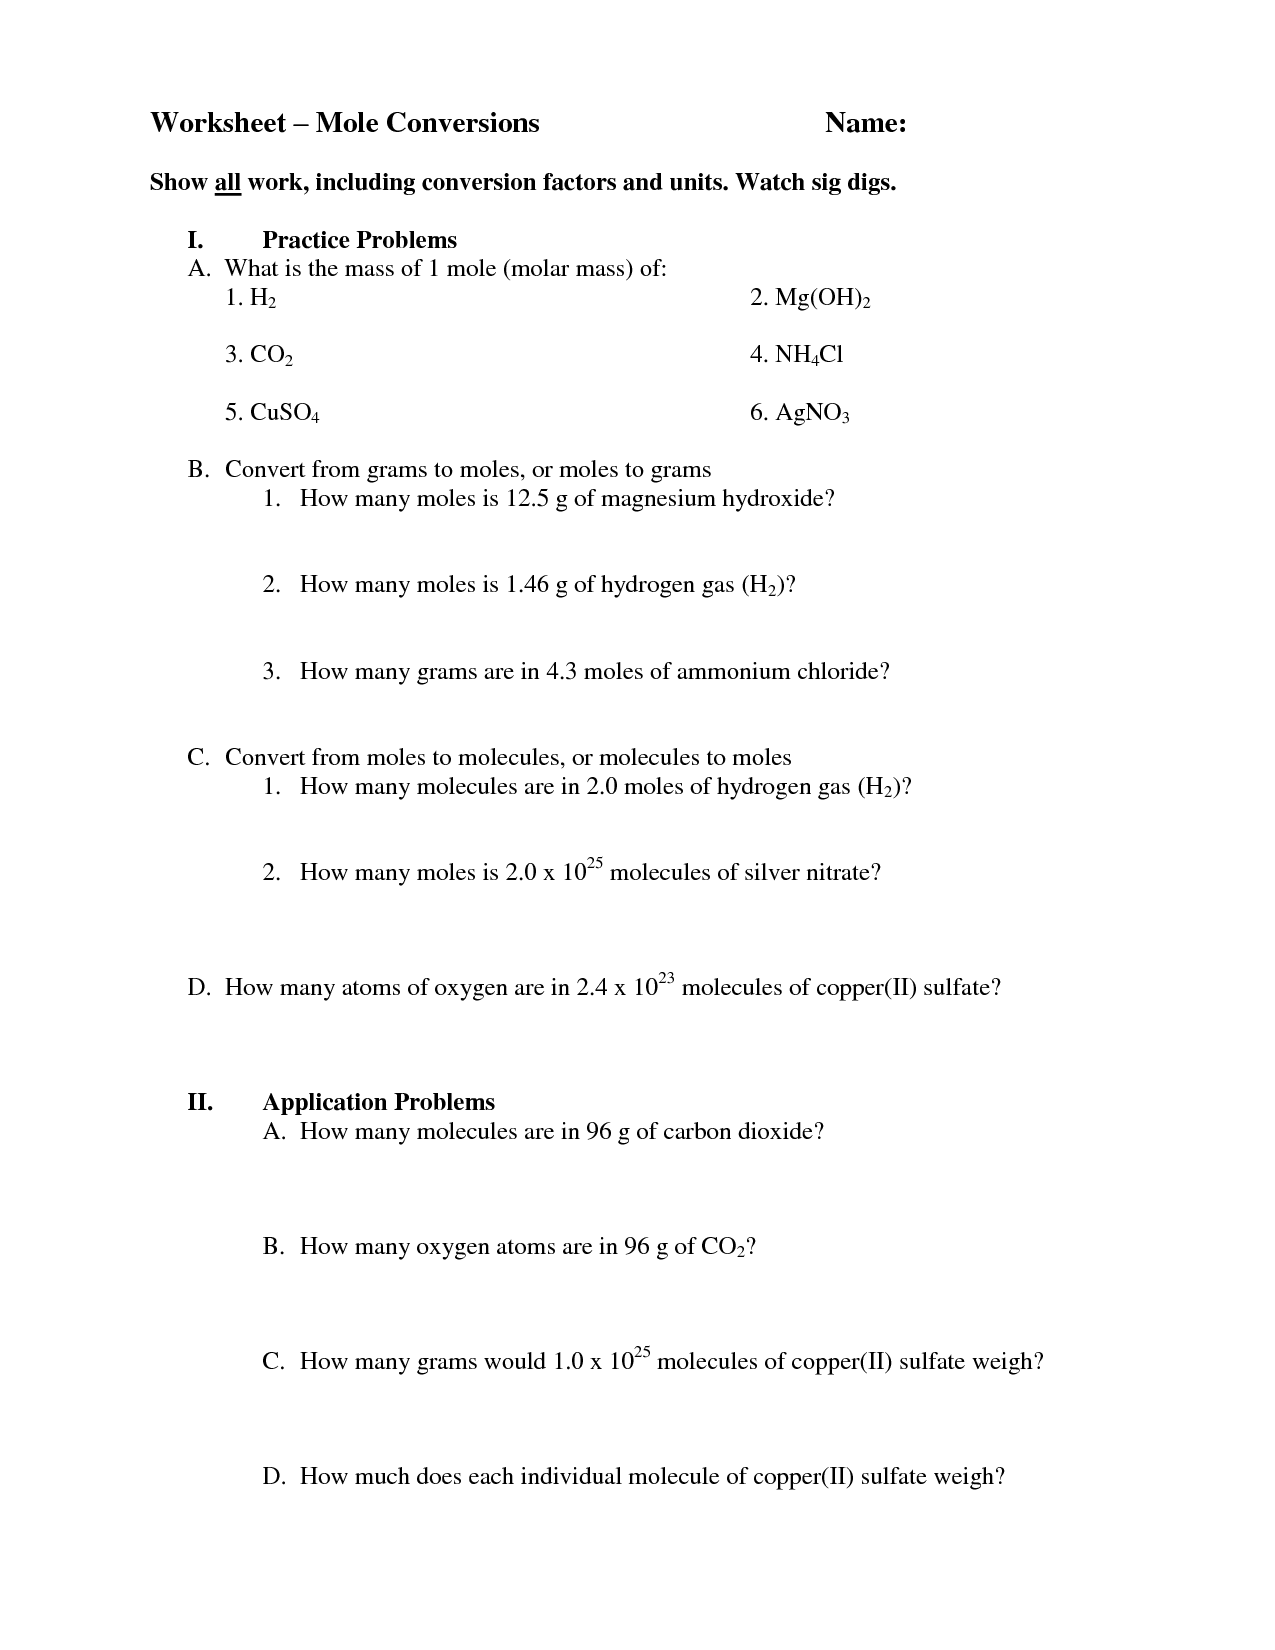 Molar Conversion Worksheet Answer Key